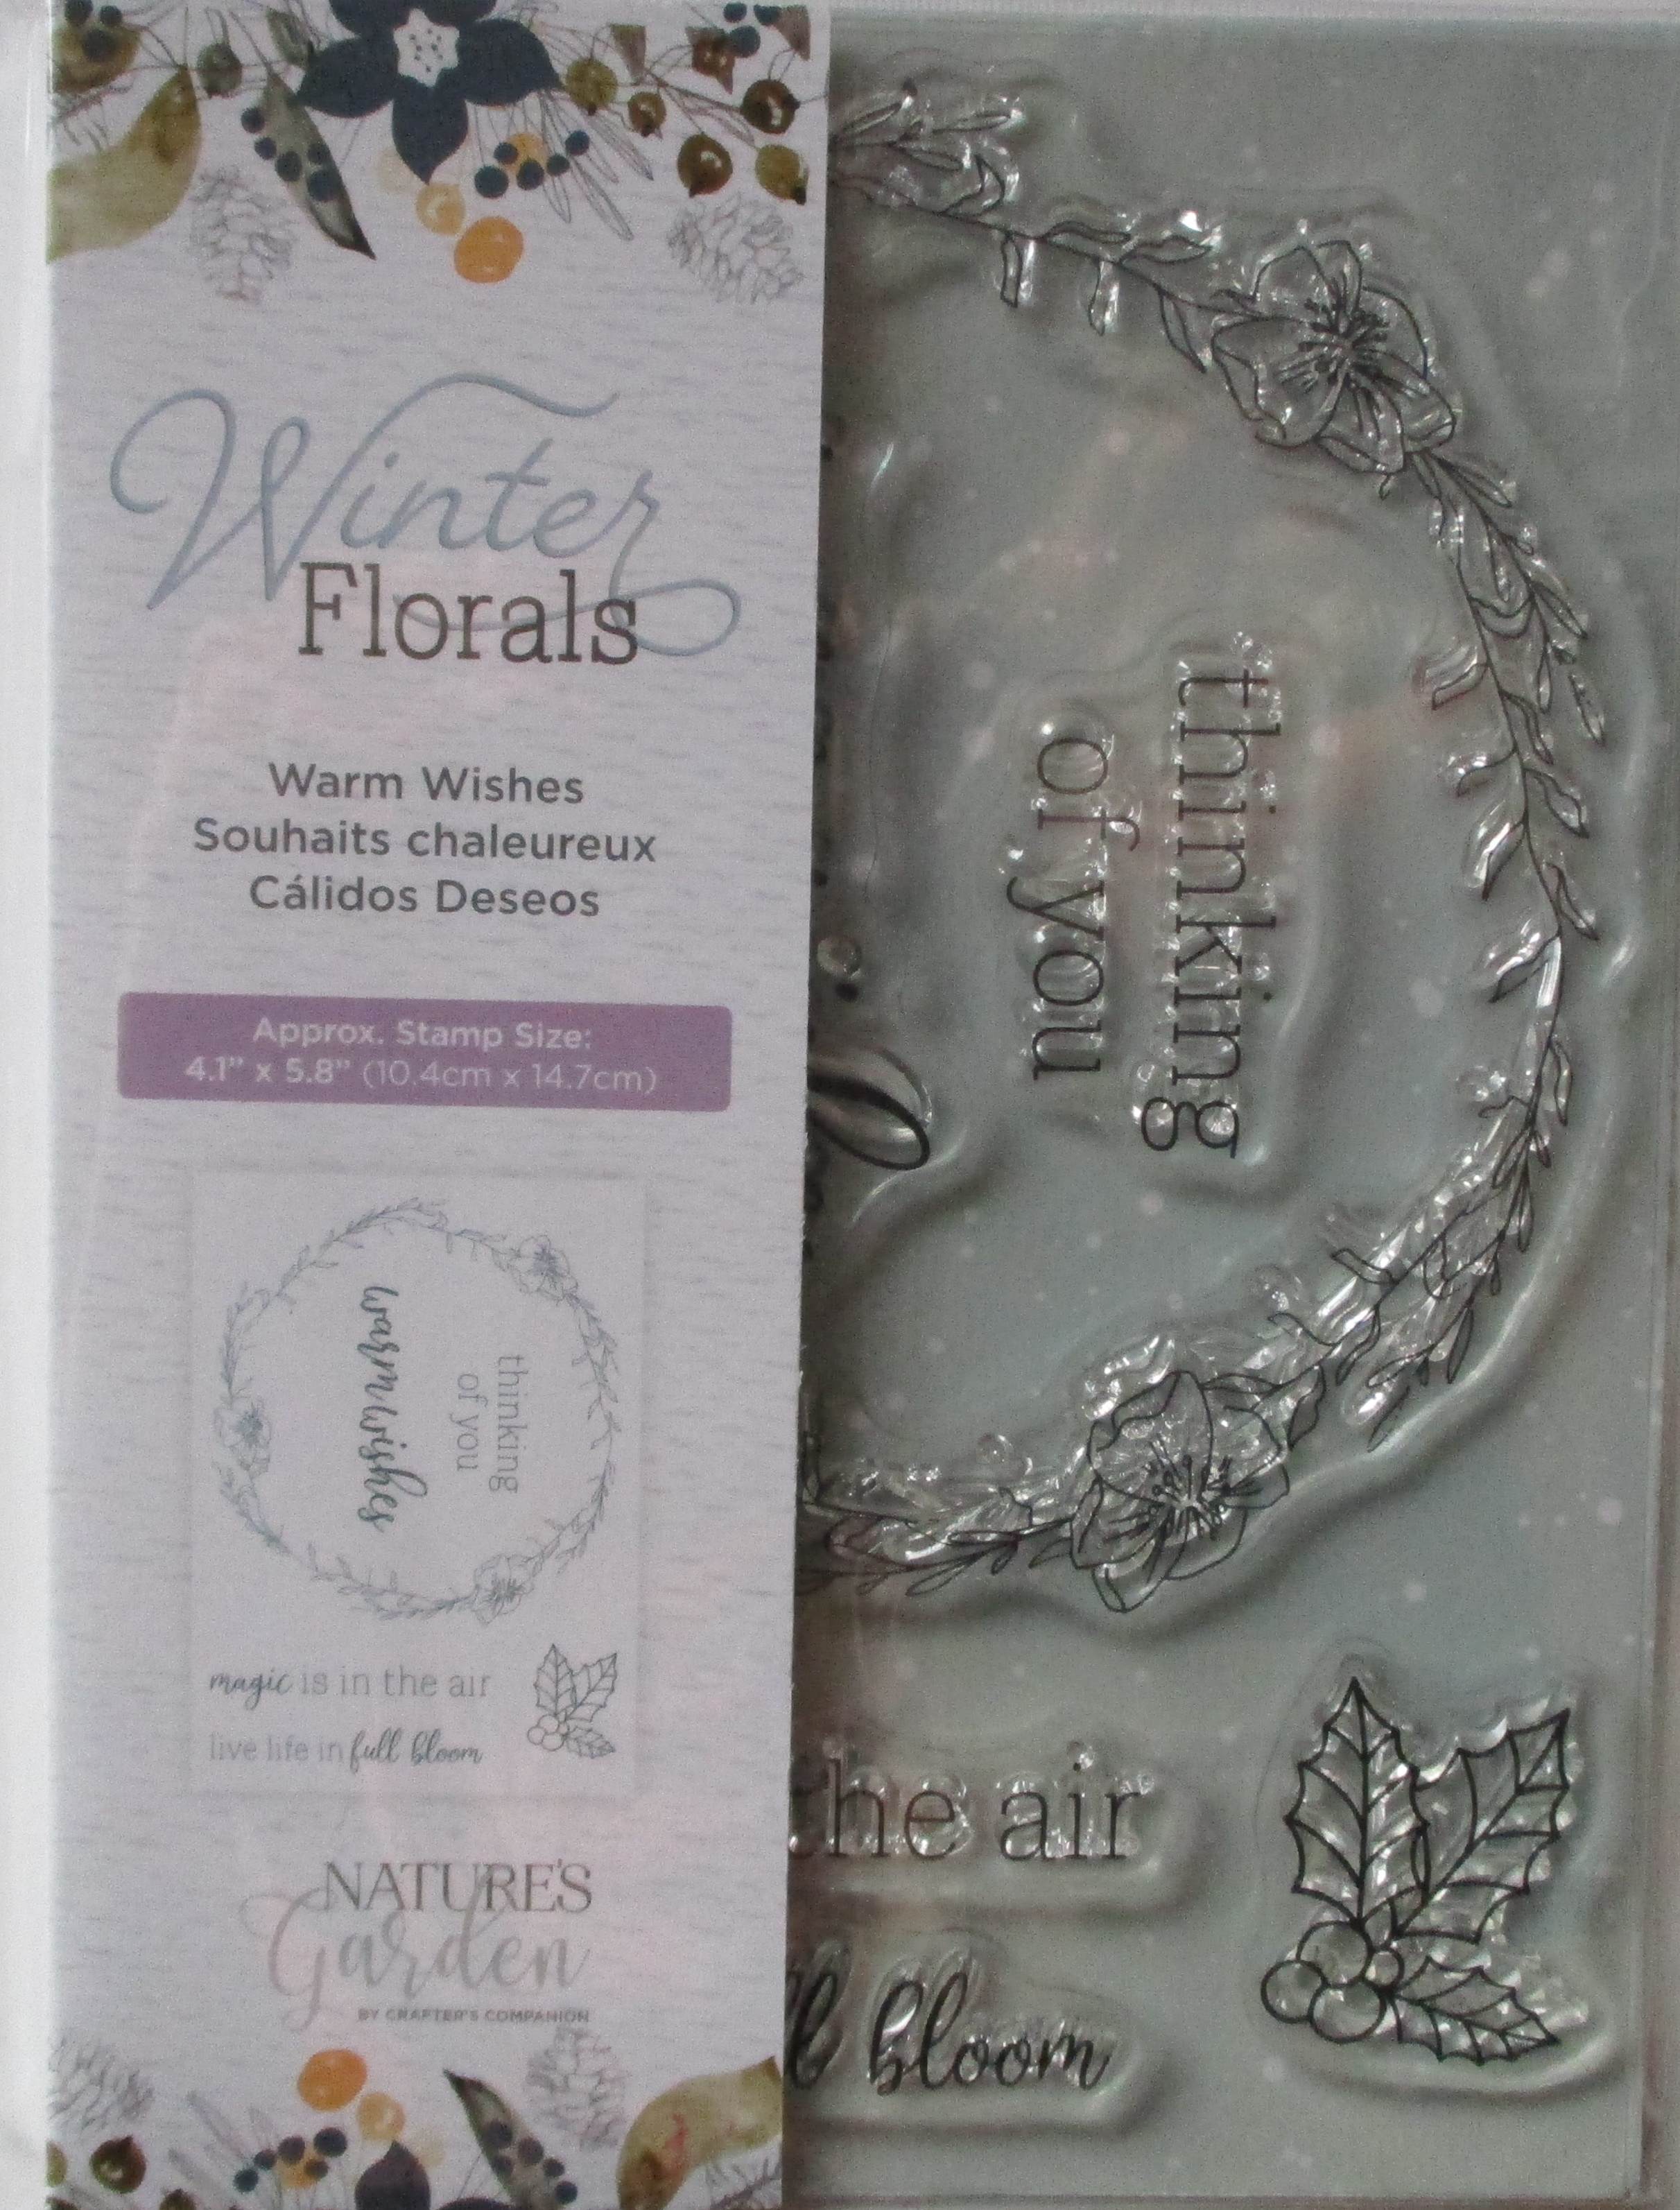 Stempelset Winter Florals, Warm Wishes, Crafters Companion